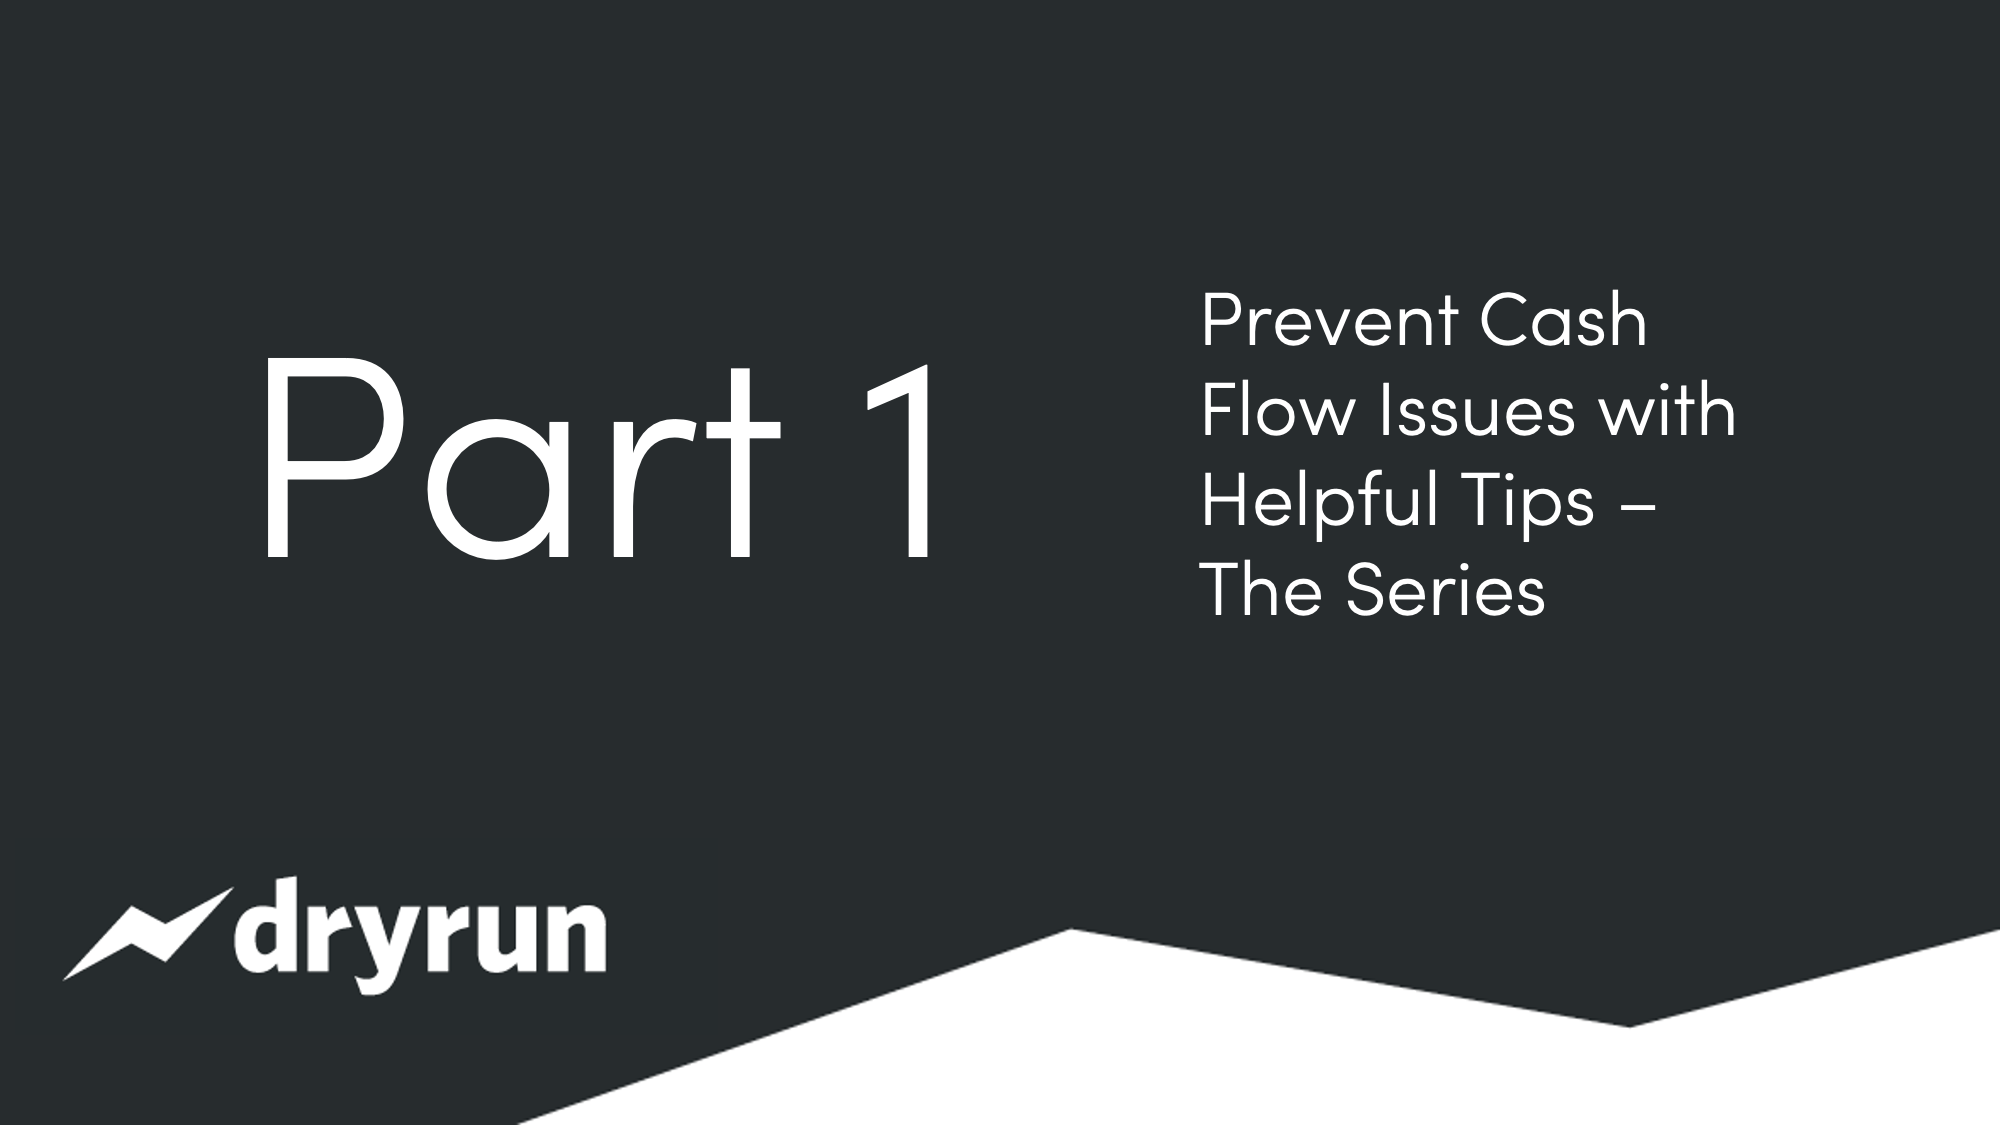 Prevent Cash Flow Issues with Helpful Tips - Part 1